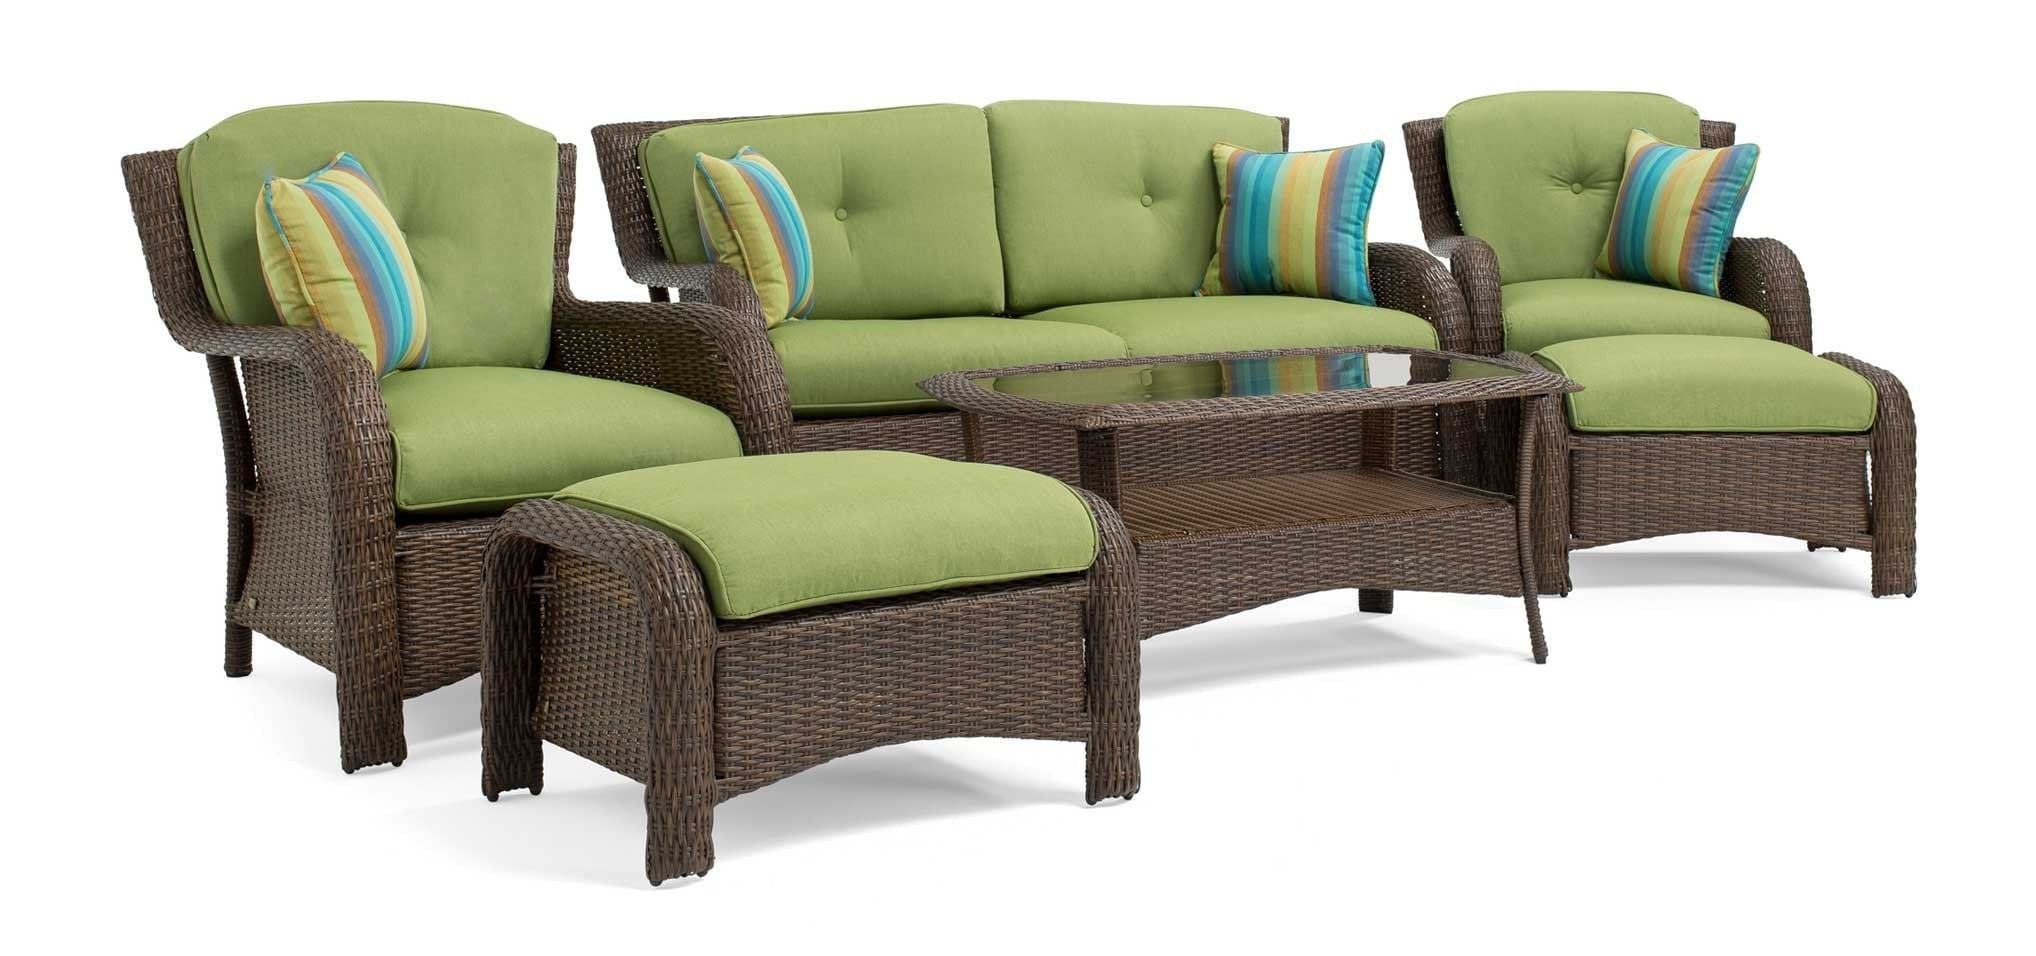 amazon piece patio set end rattan conversation com table outdoor wicker garden furniture lawn chairs dp backyard tangkula cushioned chat with